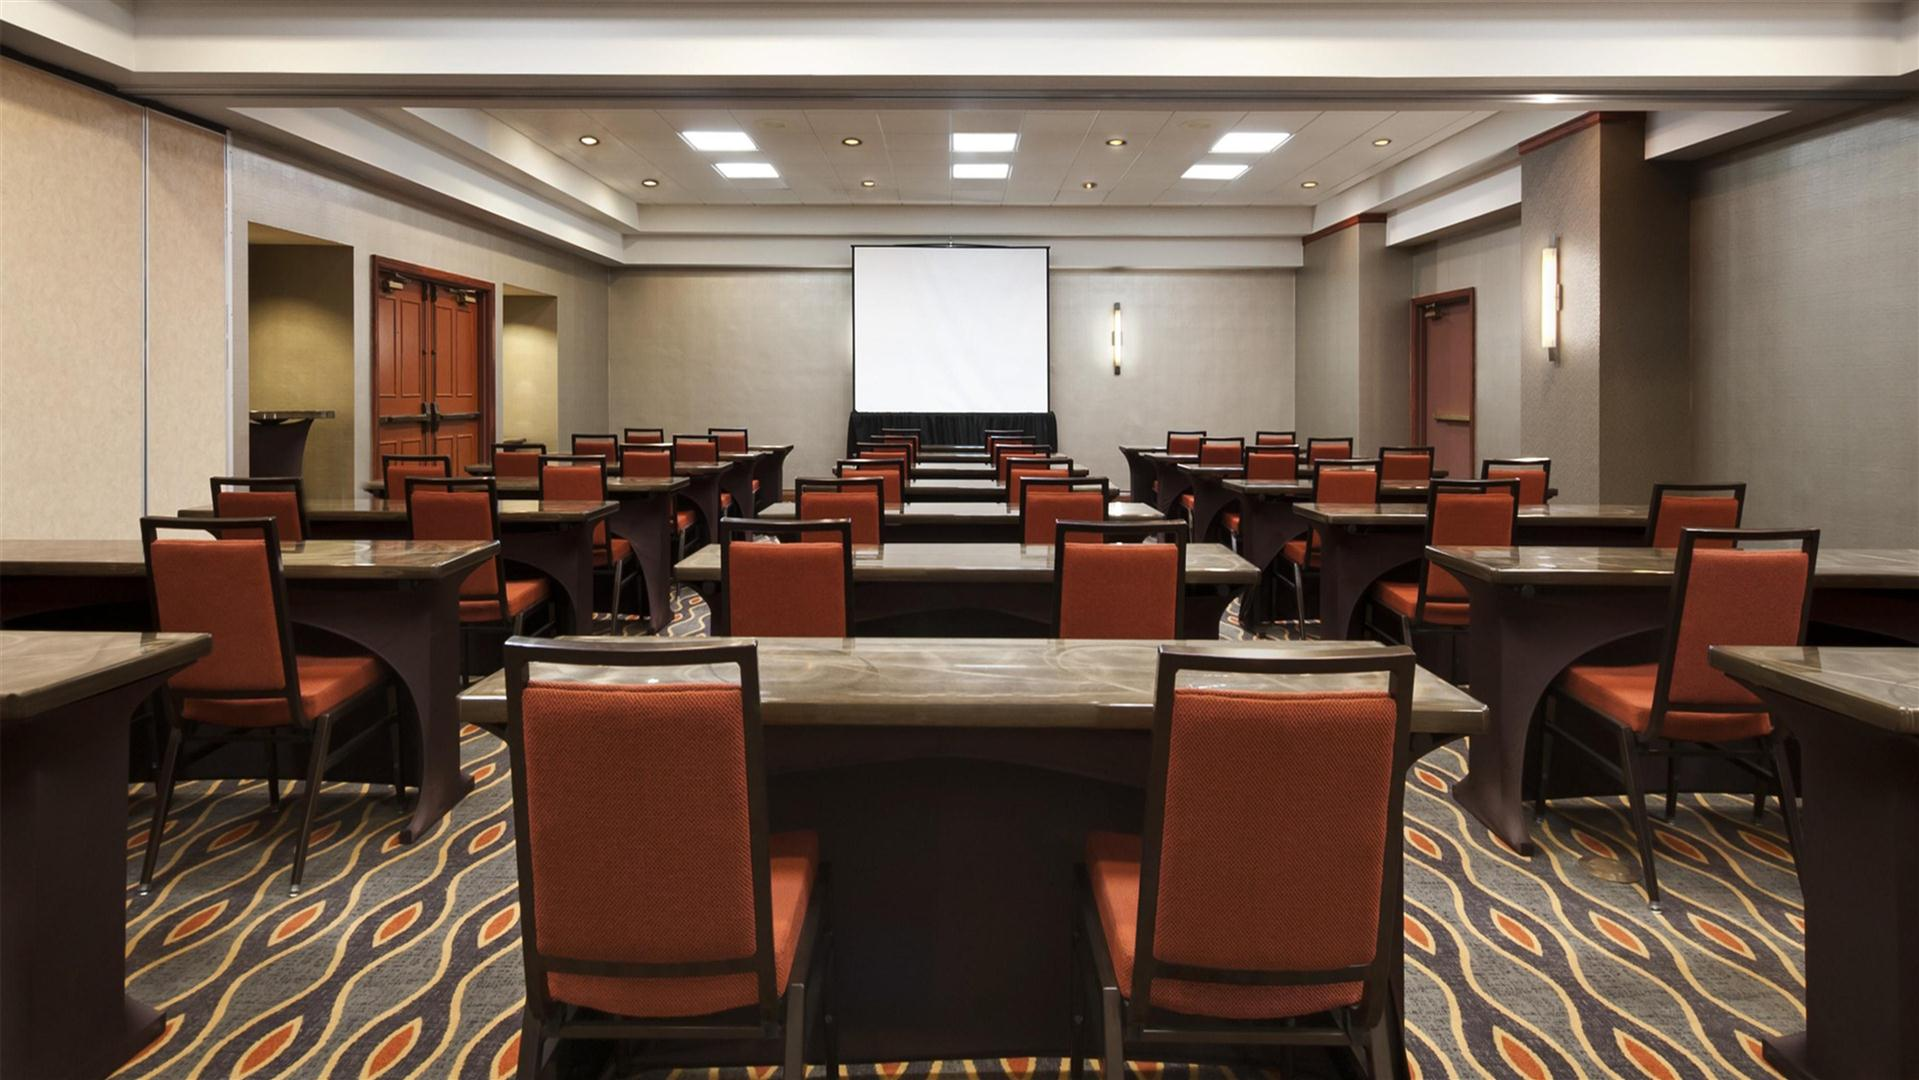 https://lonestaraudiofest.com/Venue/ES_Galleria_Meeting_Room_2.jpg